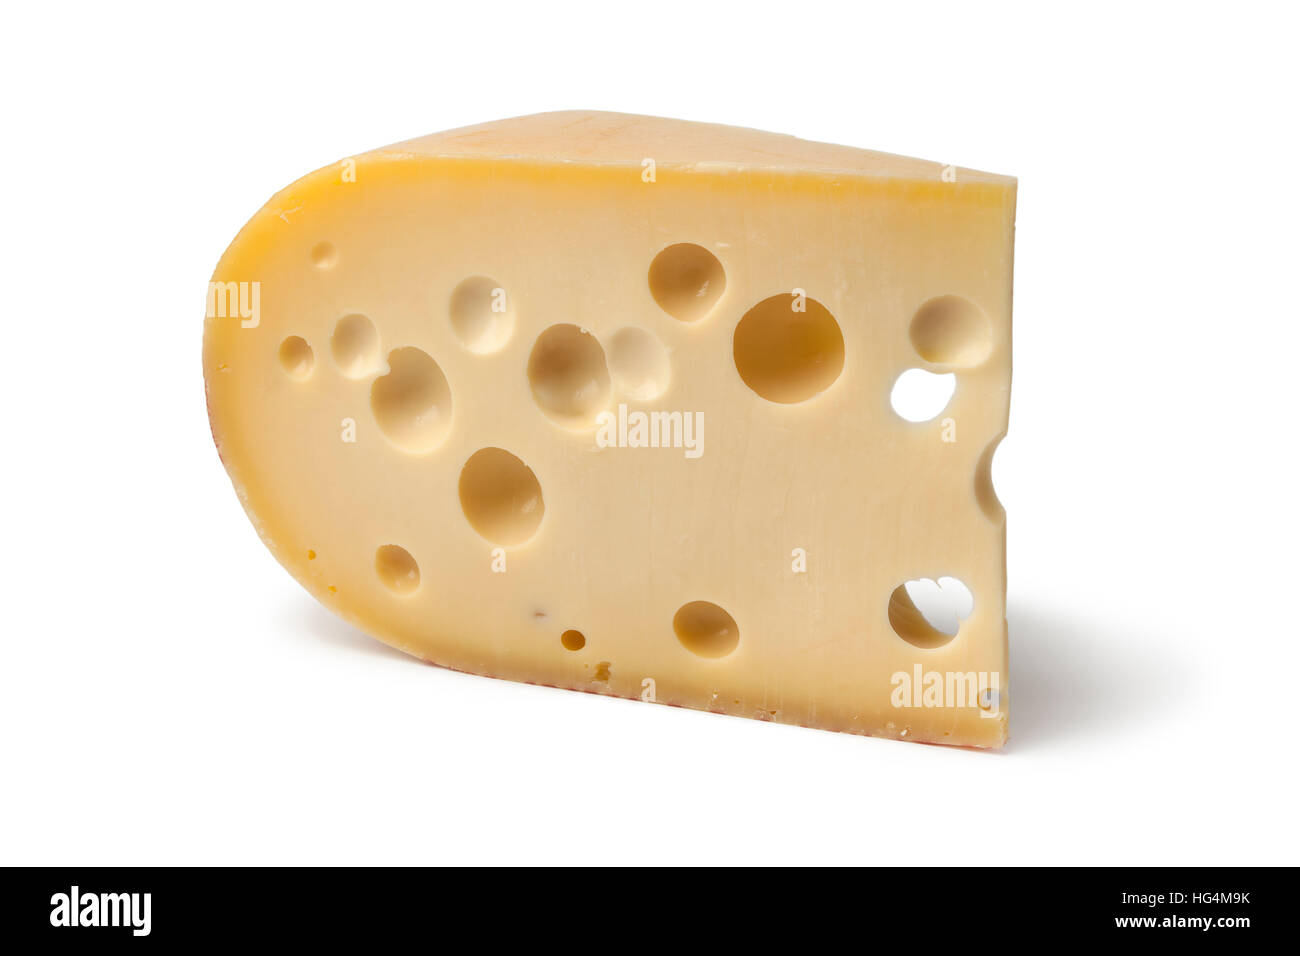 Piece of emmenthaler cheese on white background - Stock Image